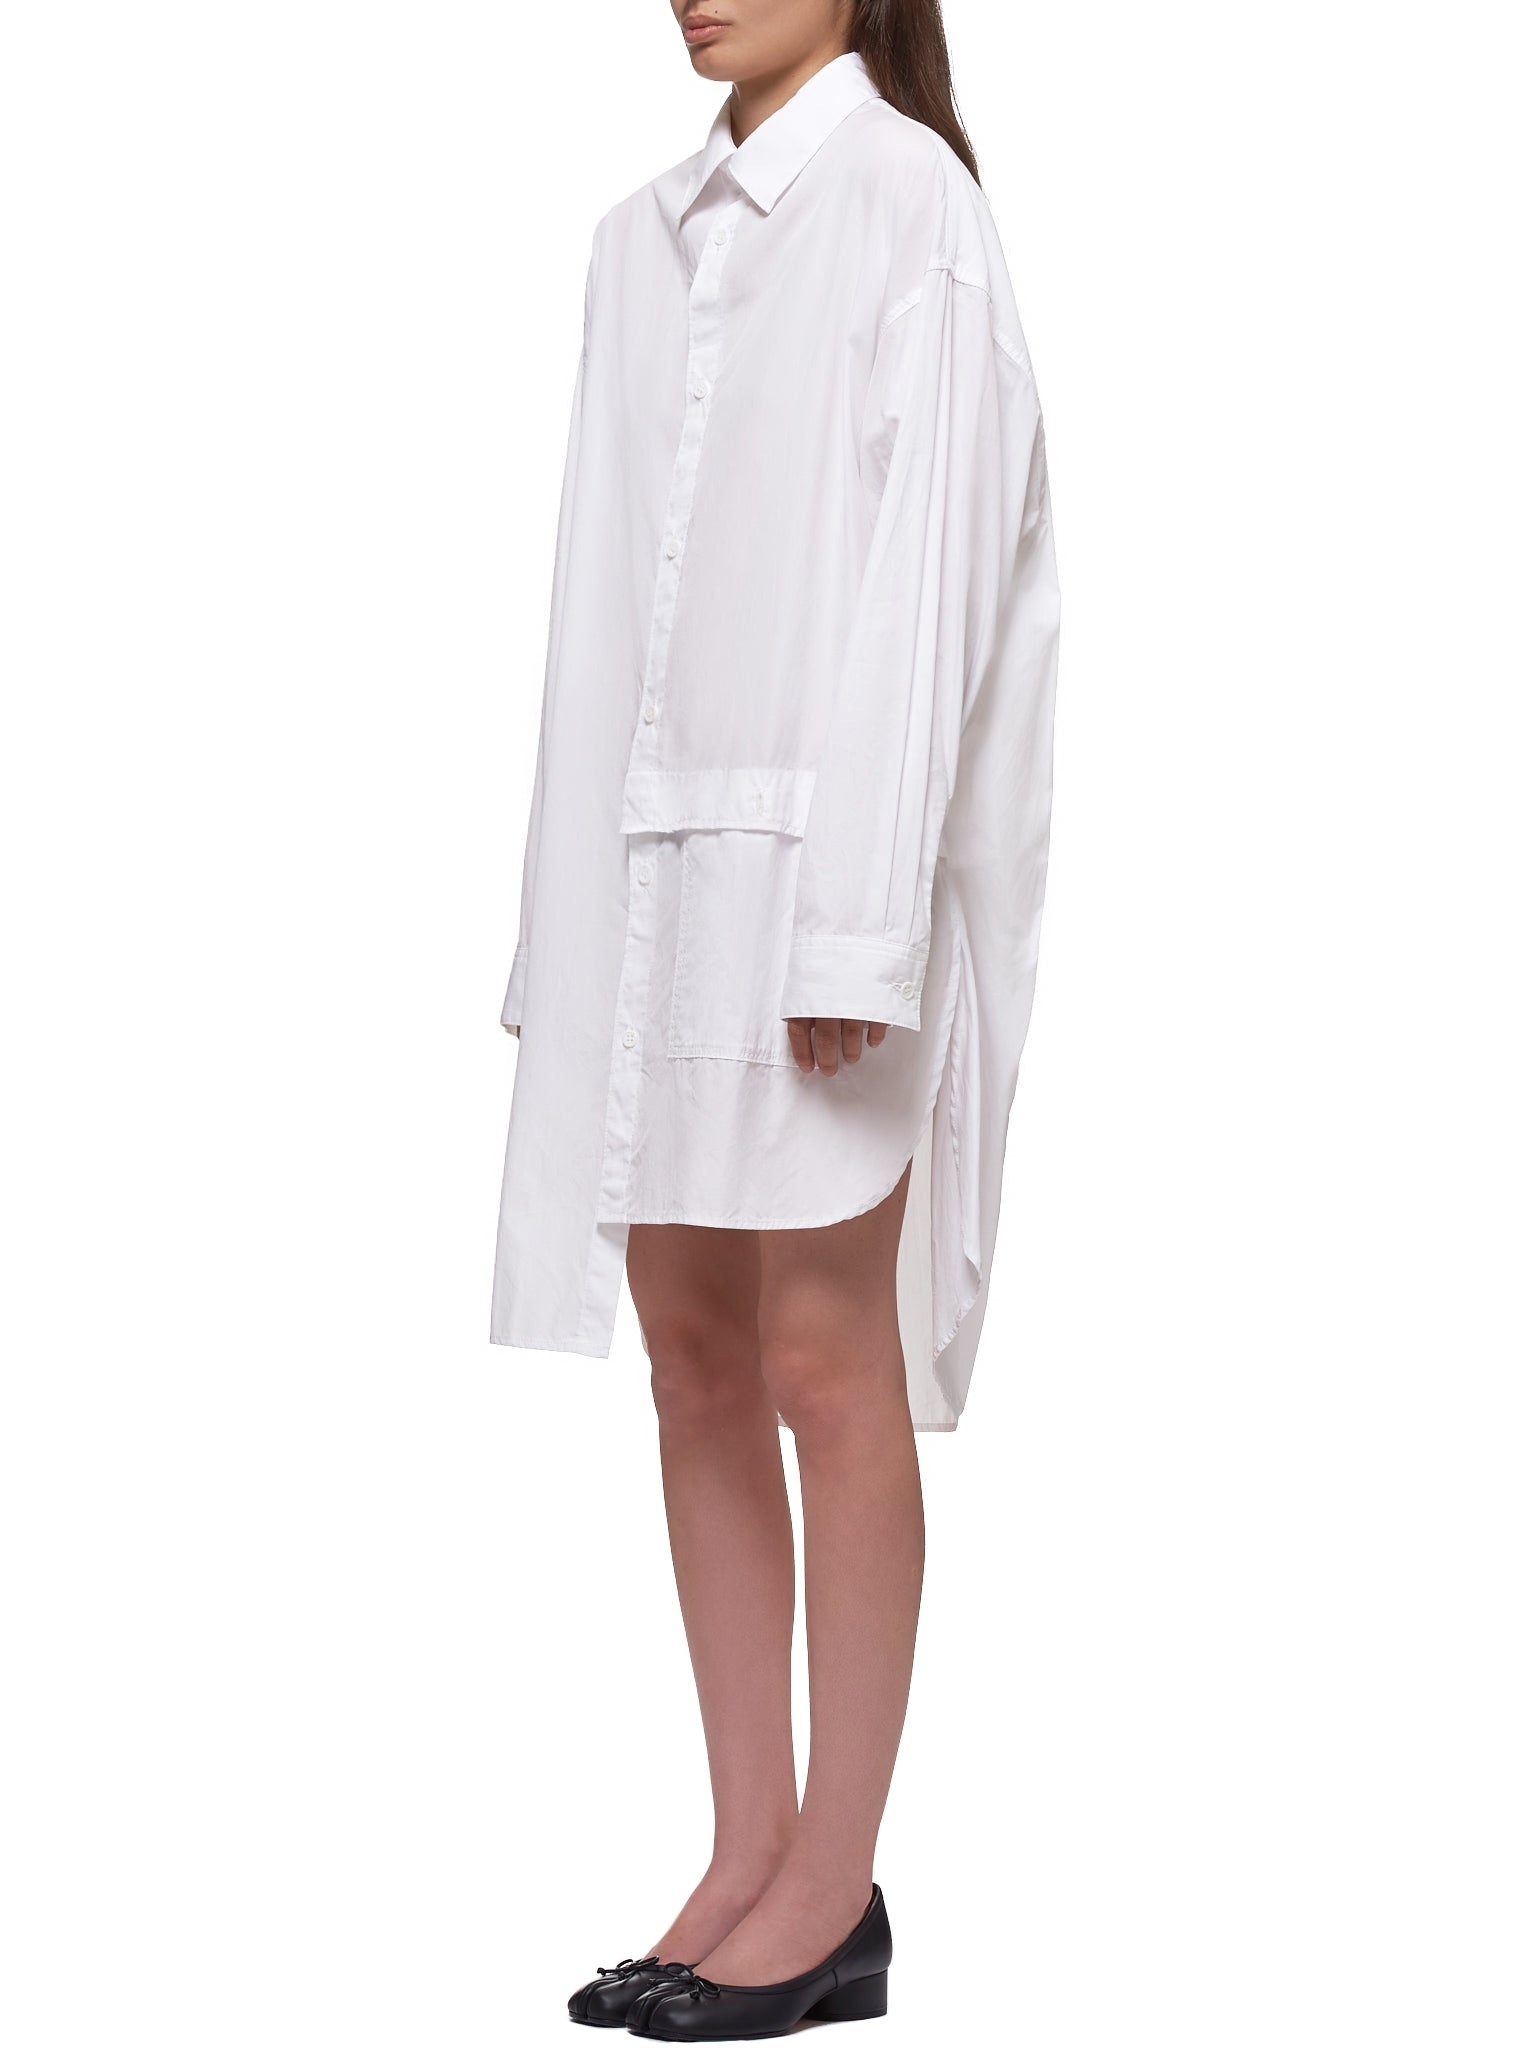 Painter's Shirtdress (YN-B16-001-1-WHITE)